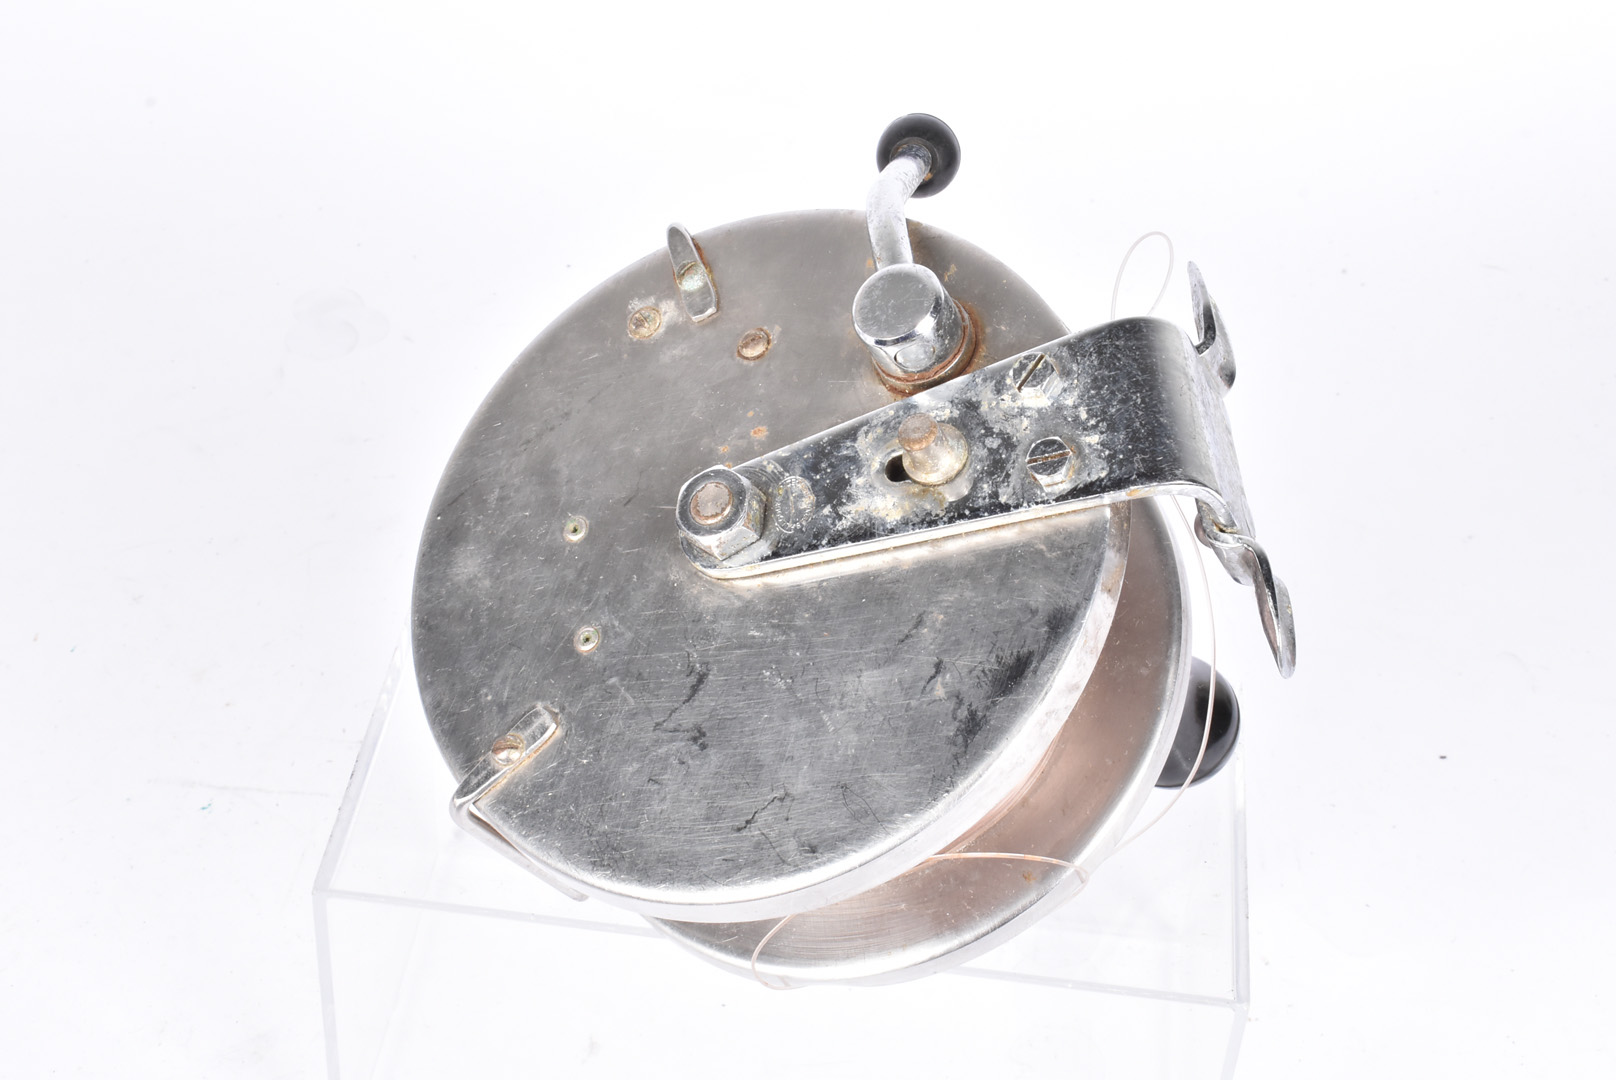 A large Allcock Sea Fishing reel, in chrome and white metal, 6 inch diameter - Image 2 of 2